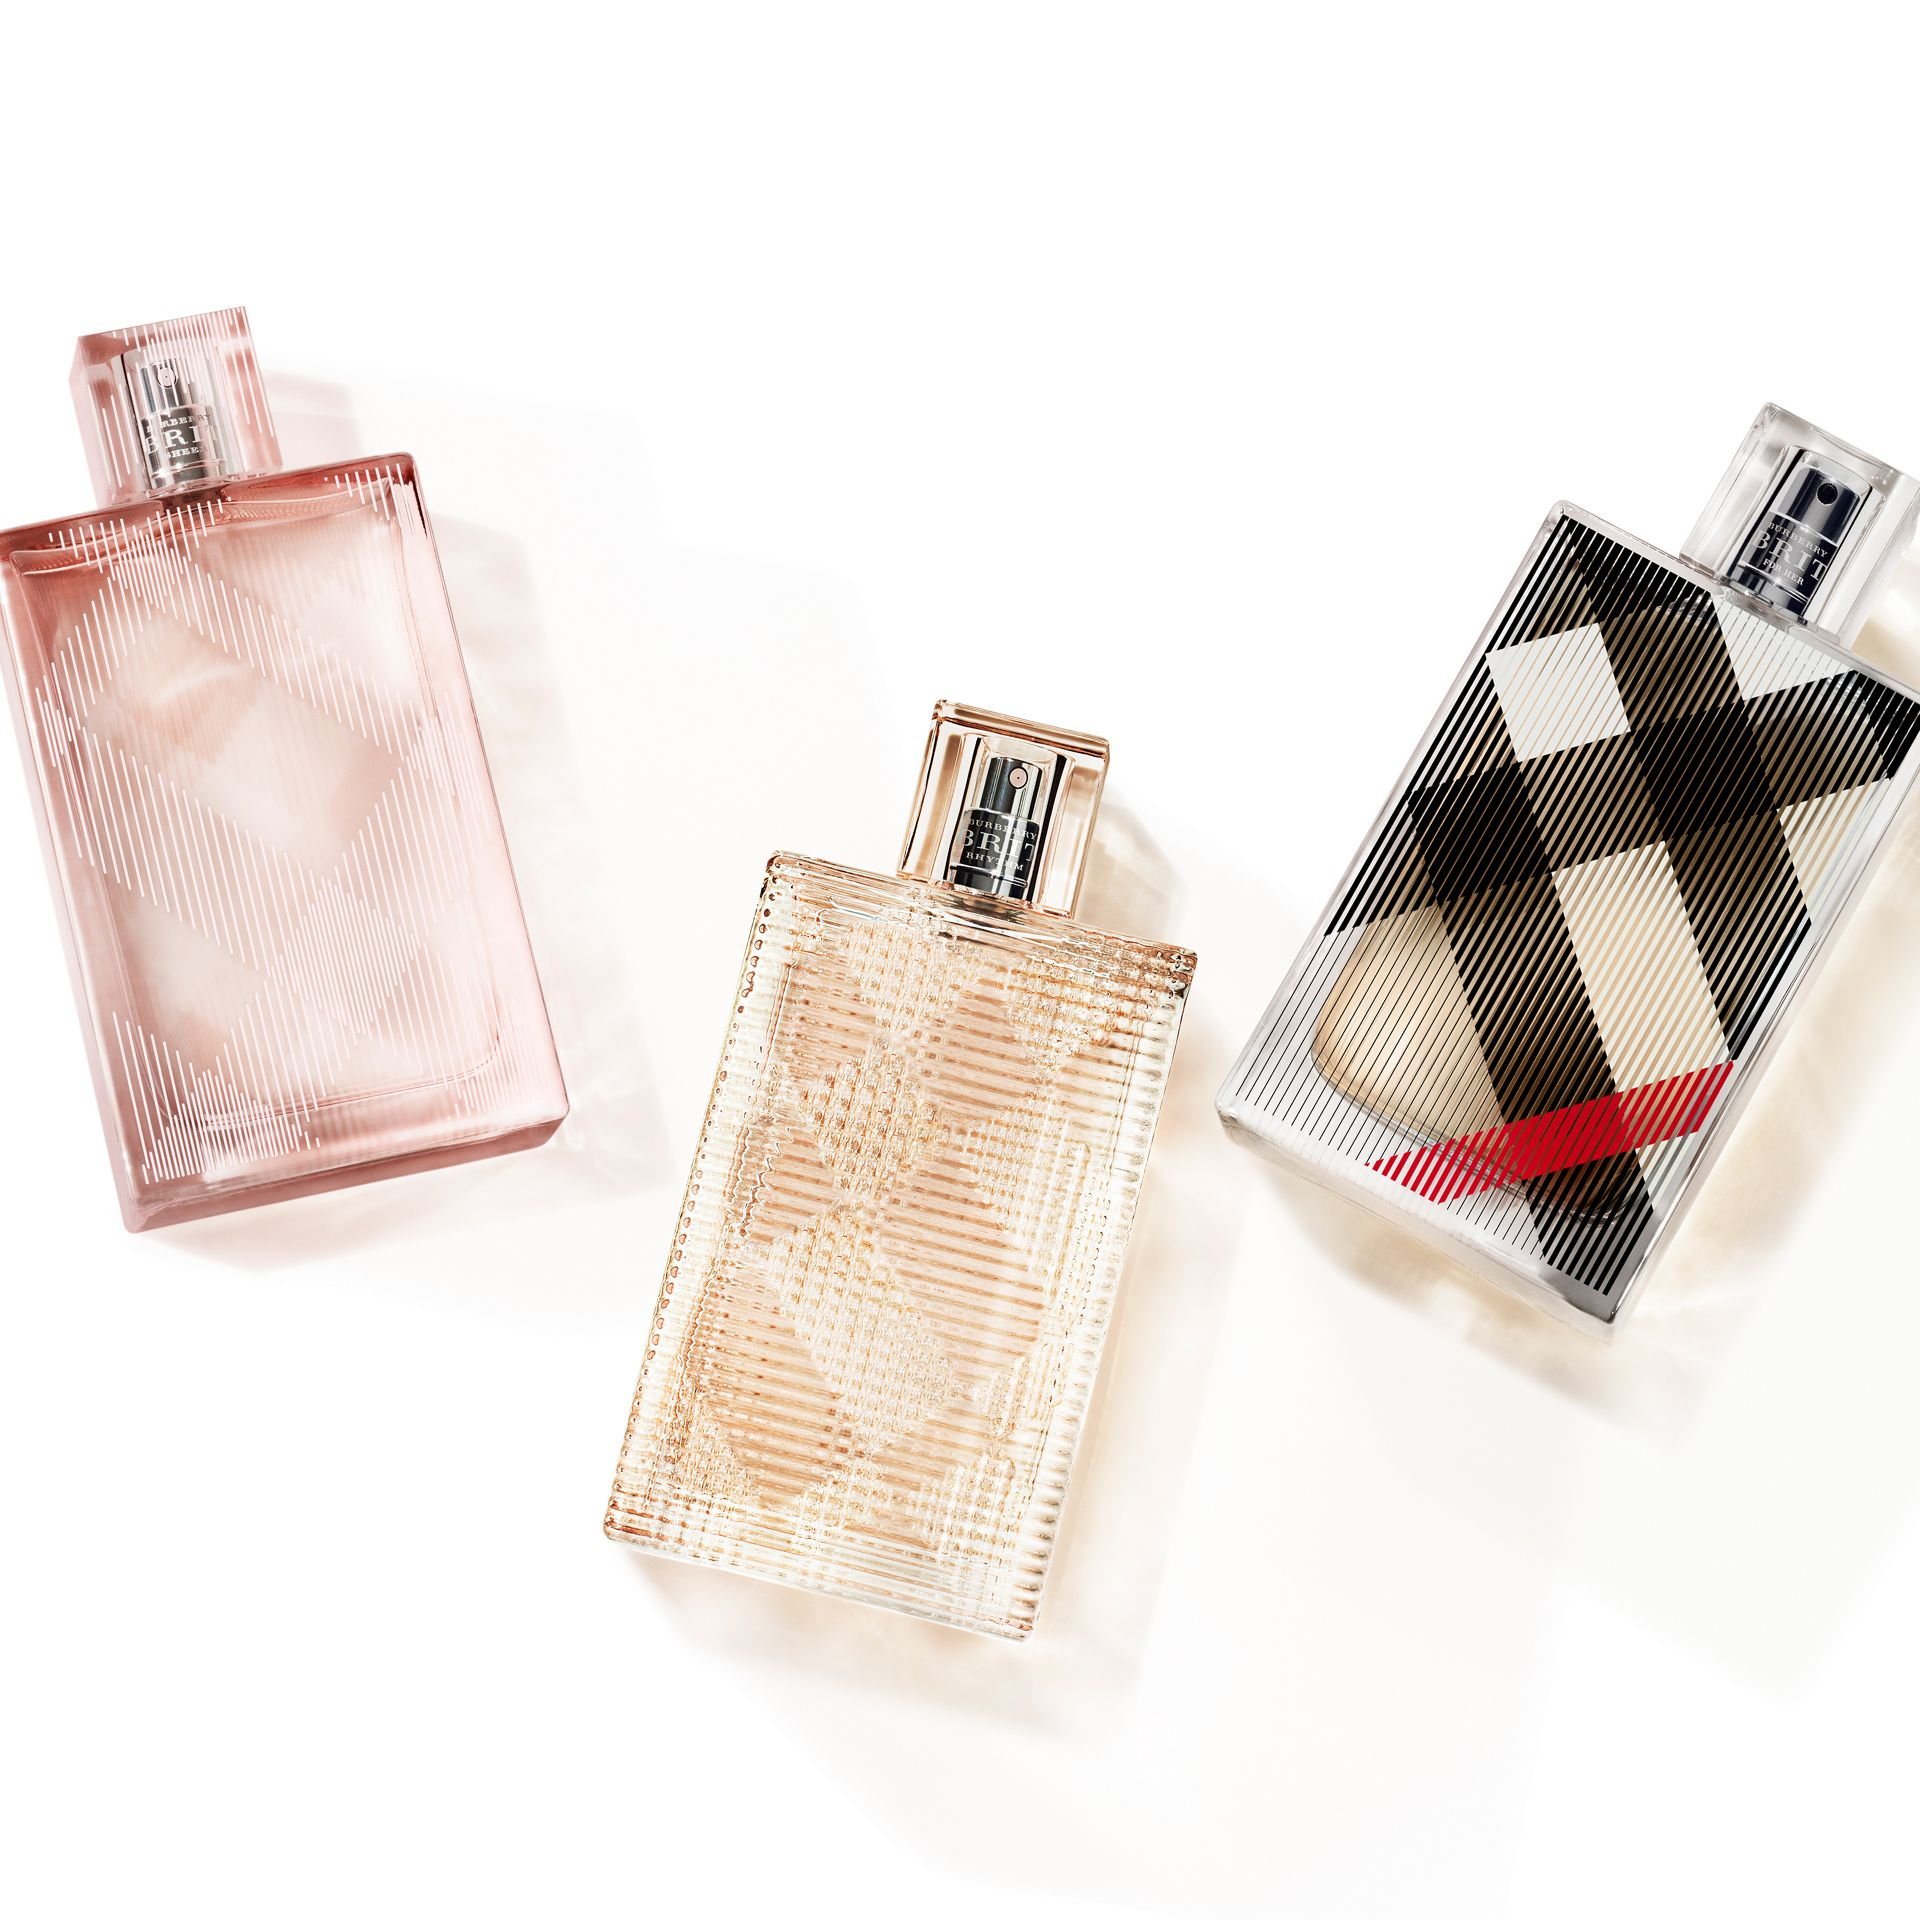 Burberry Brit For Her Eau de Toilette 100ml - Women | Burberry - gallery image 3